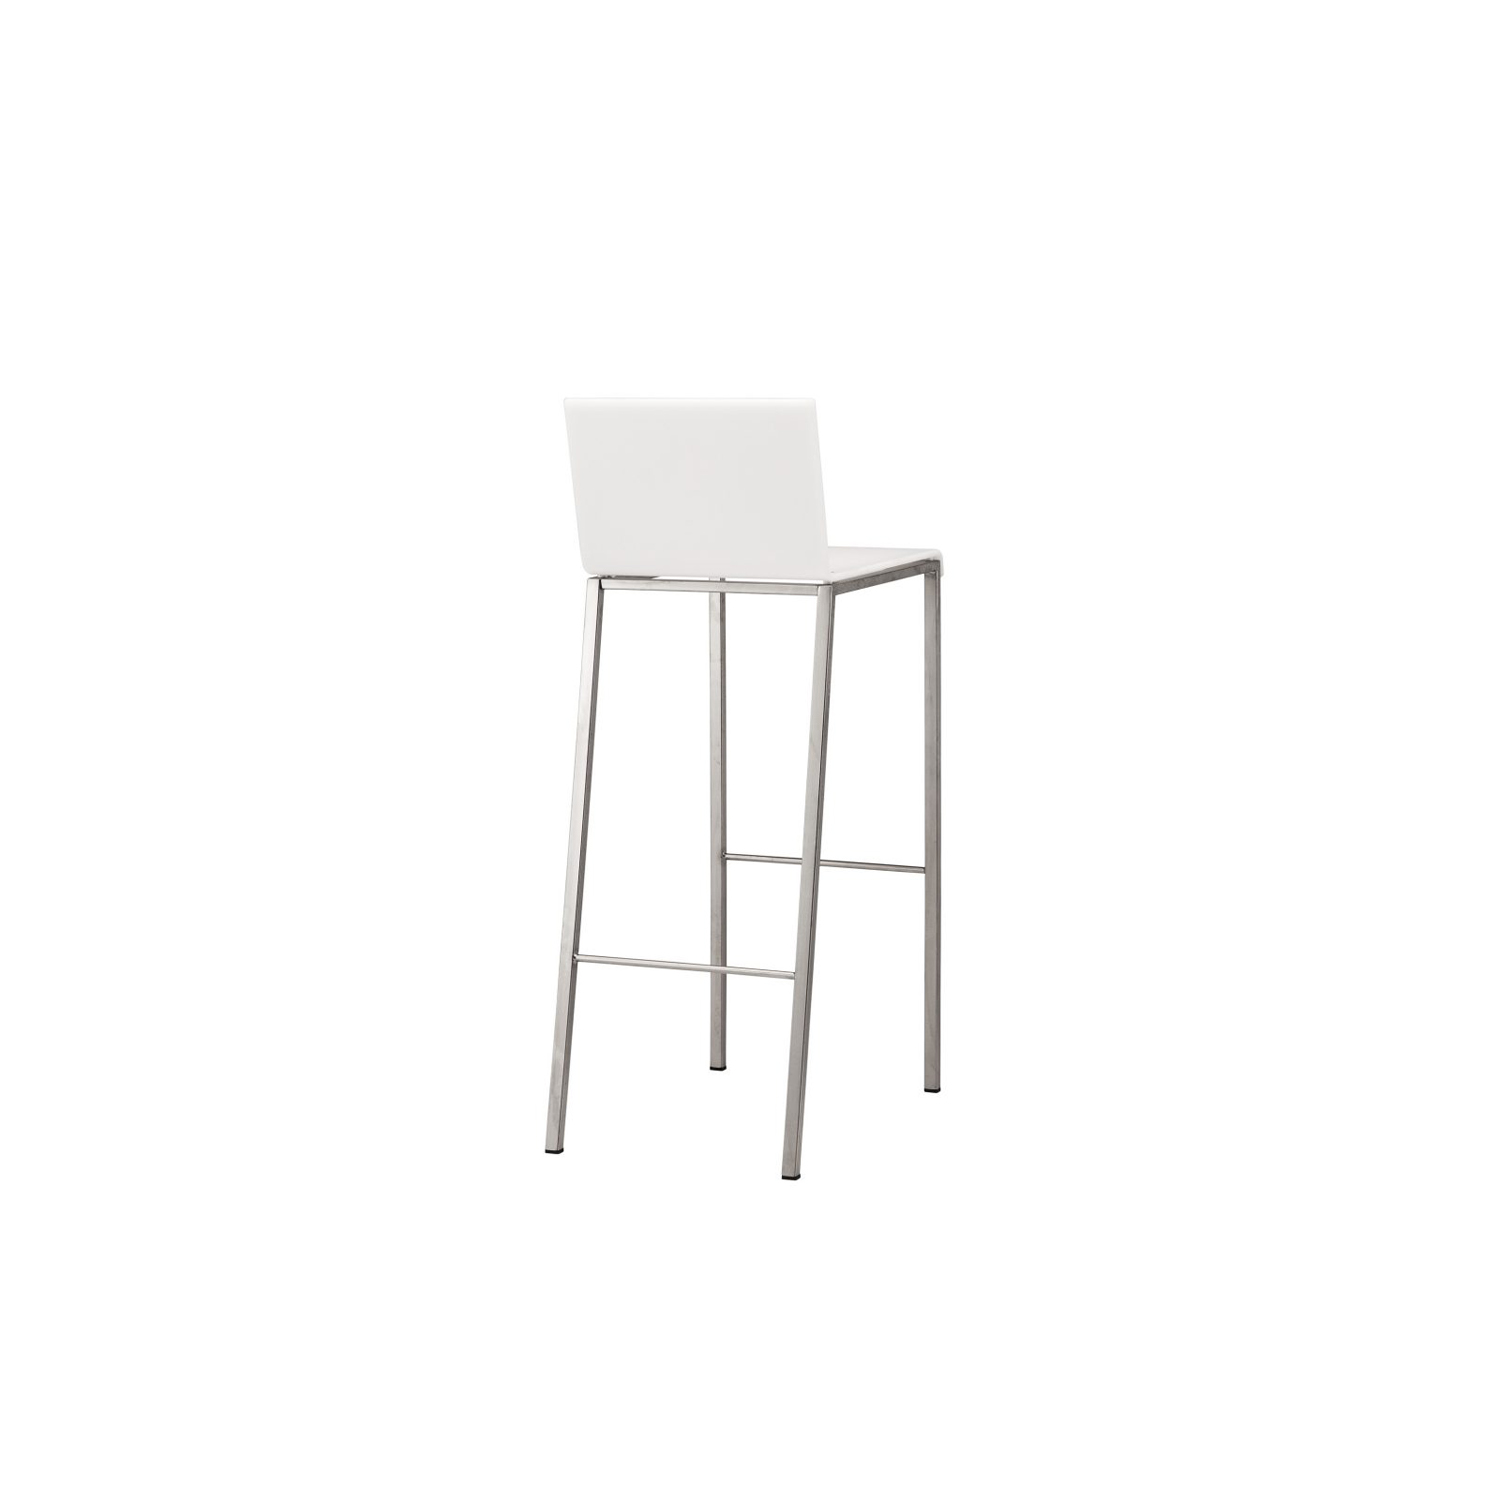 Bianco Barstool - The Bianco Barstool is an industrial yet modern addition to your home. Featuring a sandblasted stainless steel tube or embossed black or white frame 15 x 20 mm. The 10 mm seat in acrylic resin opaque black or opaline white.